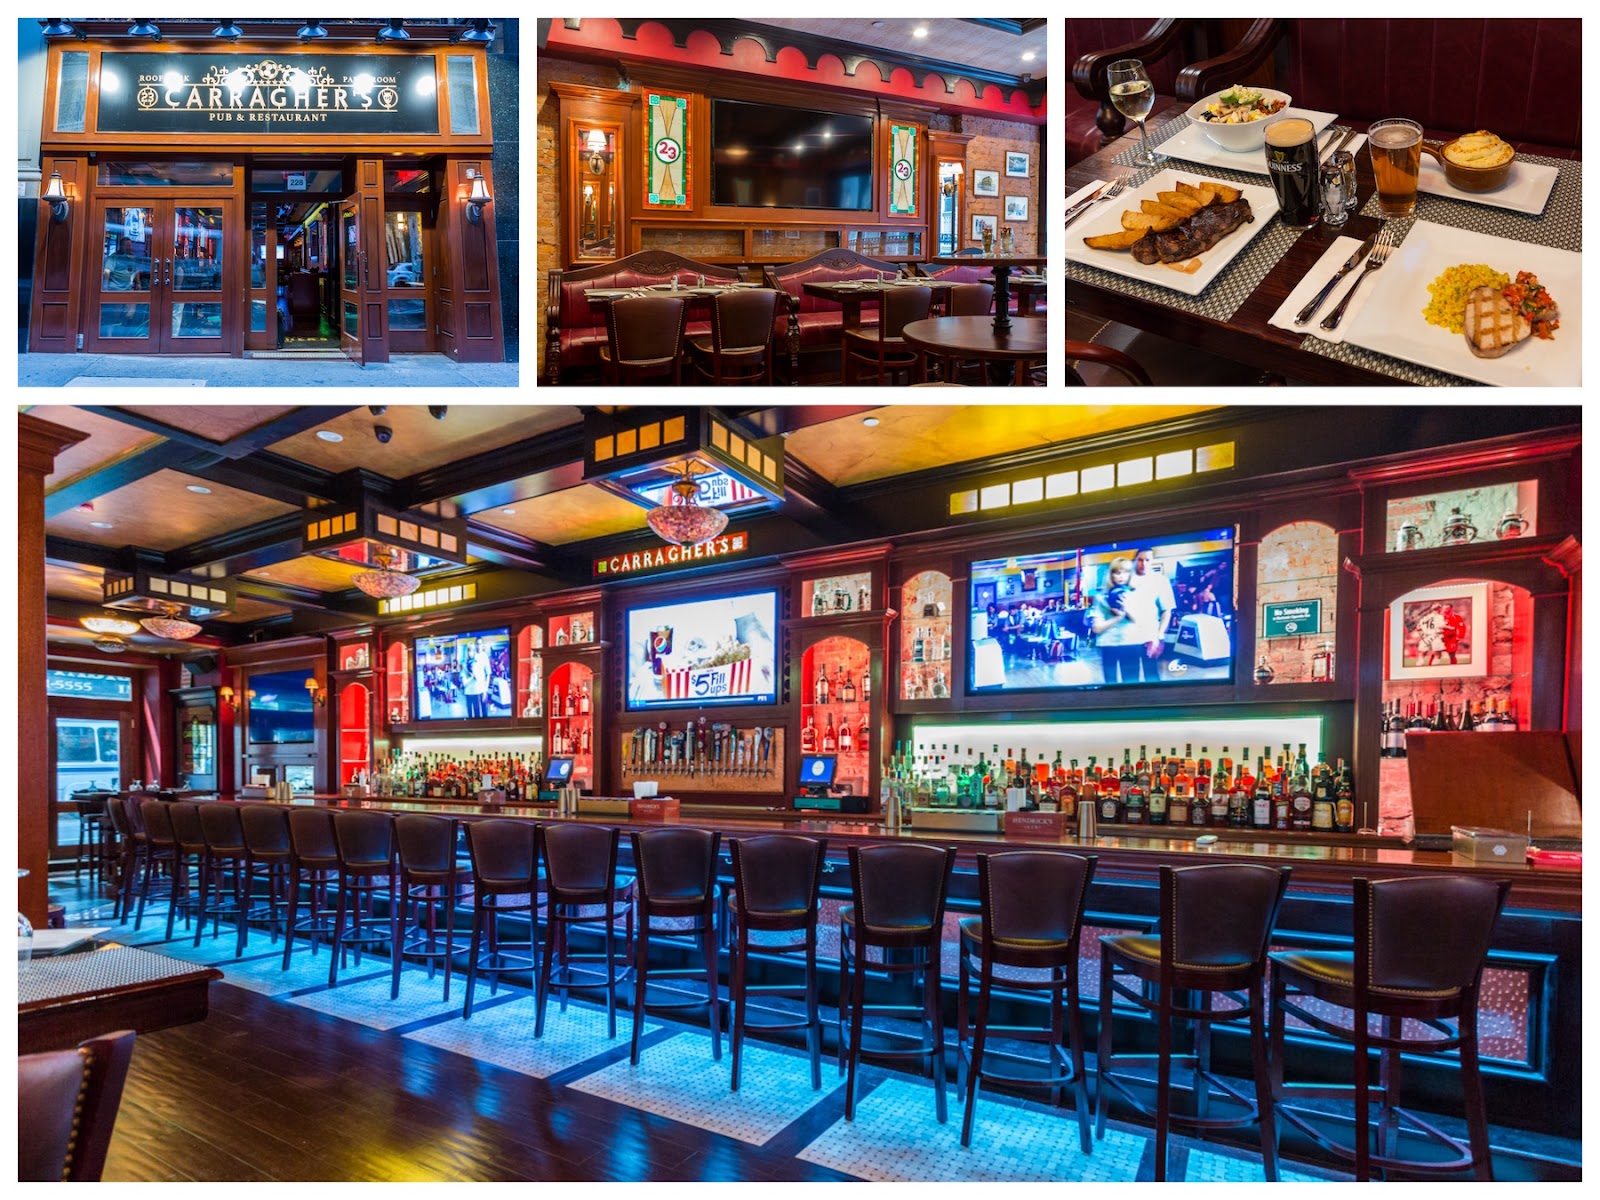 WIN: Fly to New York City and have a pint in Carra's NYC